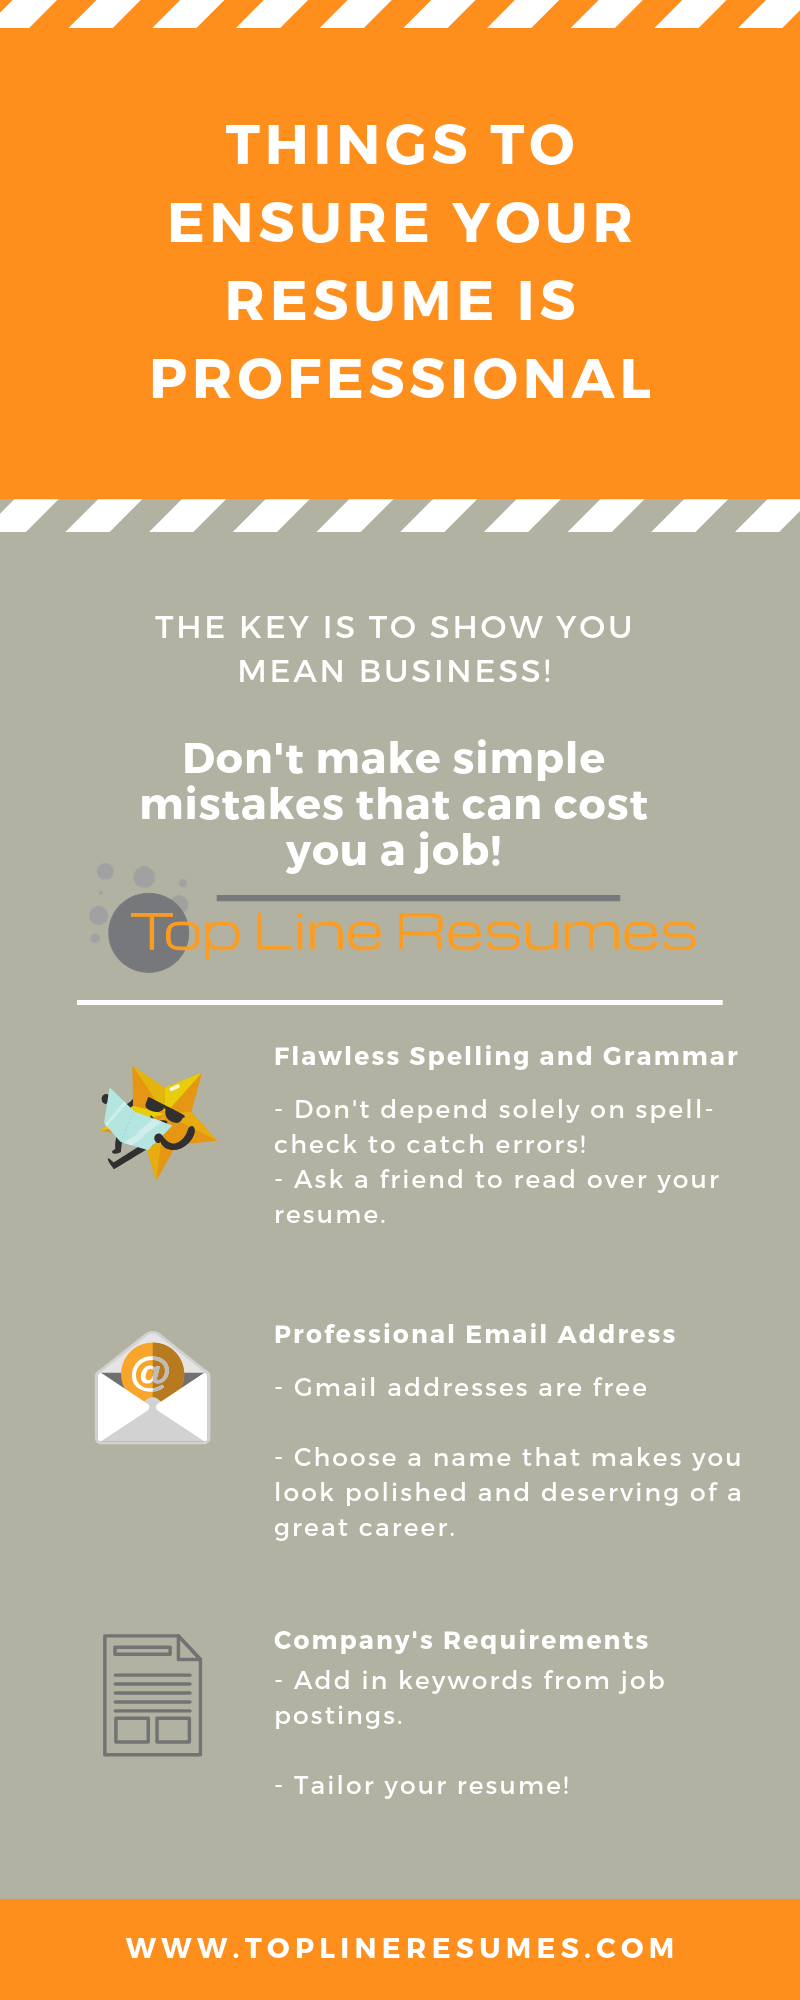 Ensure your resume is professional